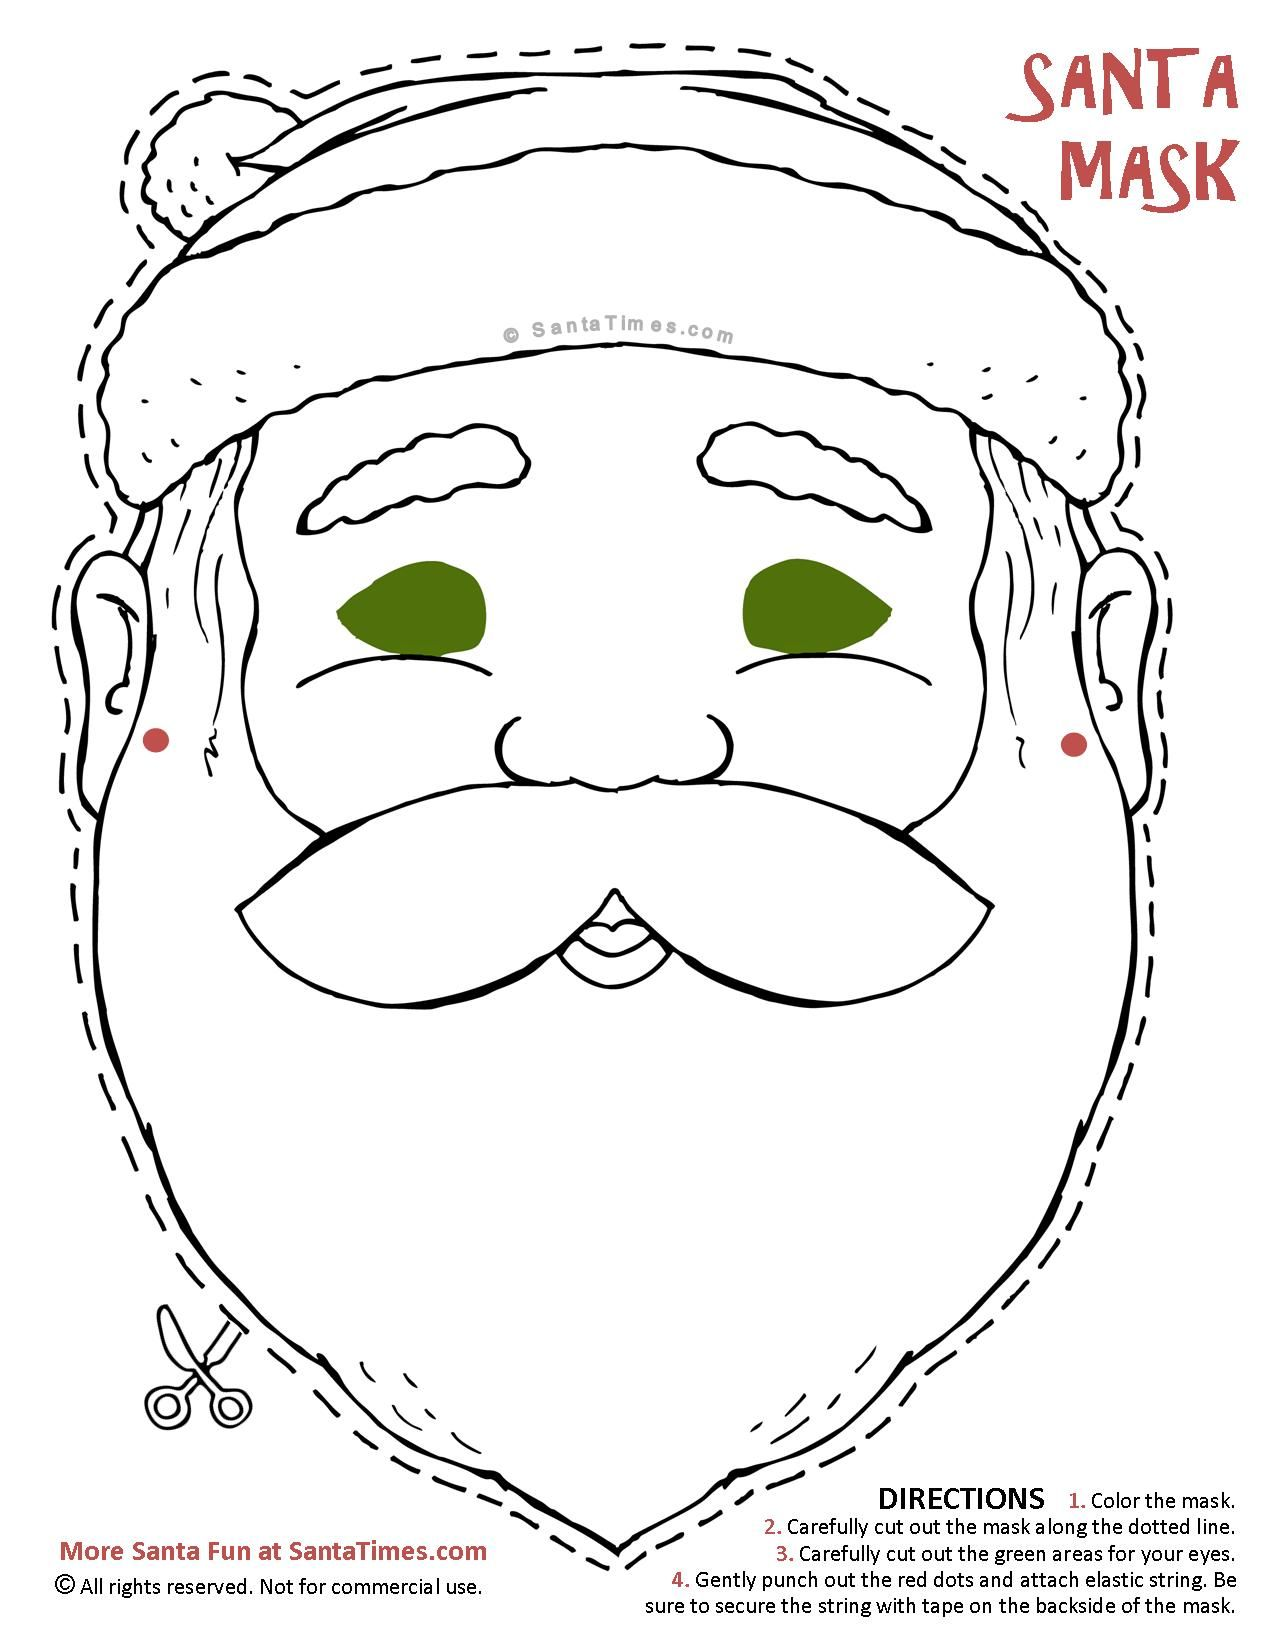 heres a jolly santa mask to cut out and color find more fun christmas printables at wwwsantatimescom santamaskcoloringpagechristmas